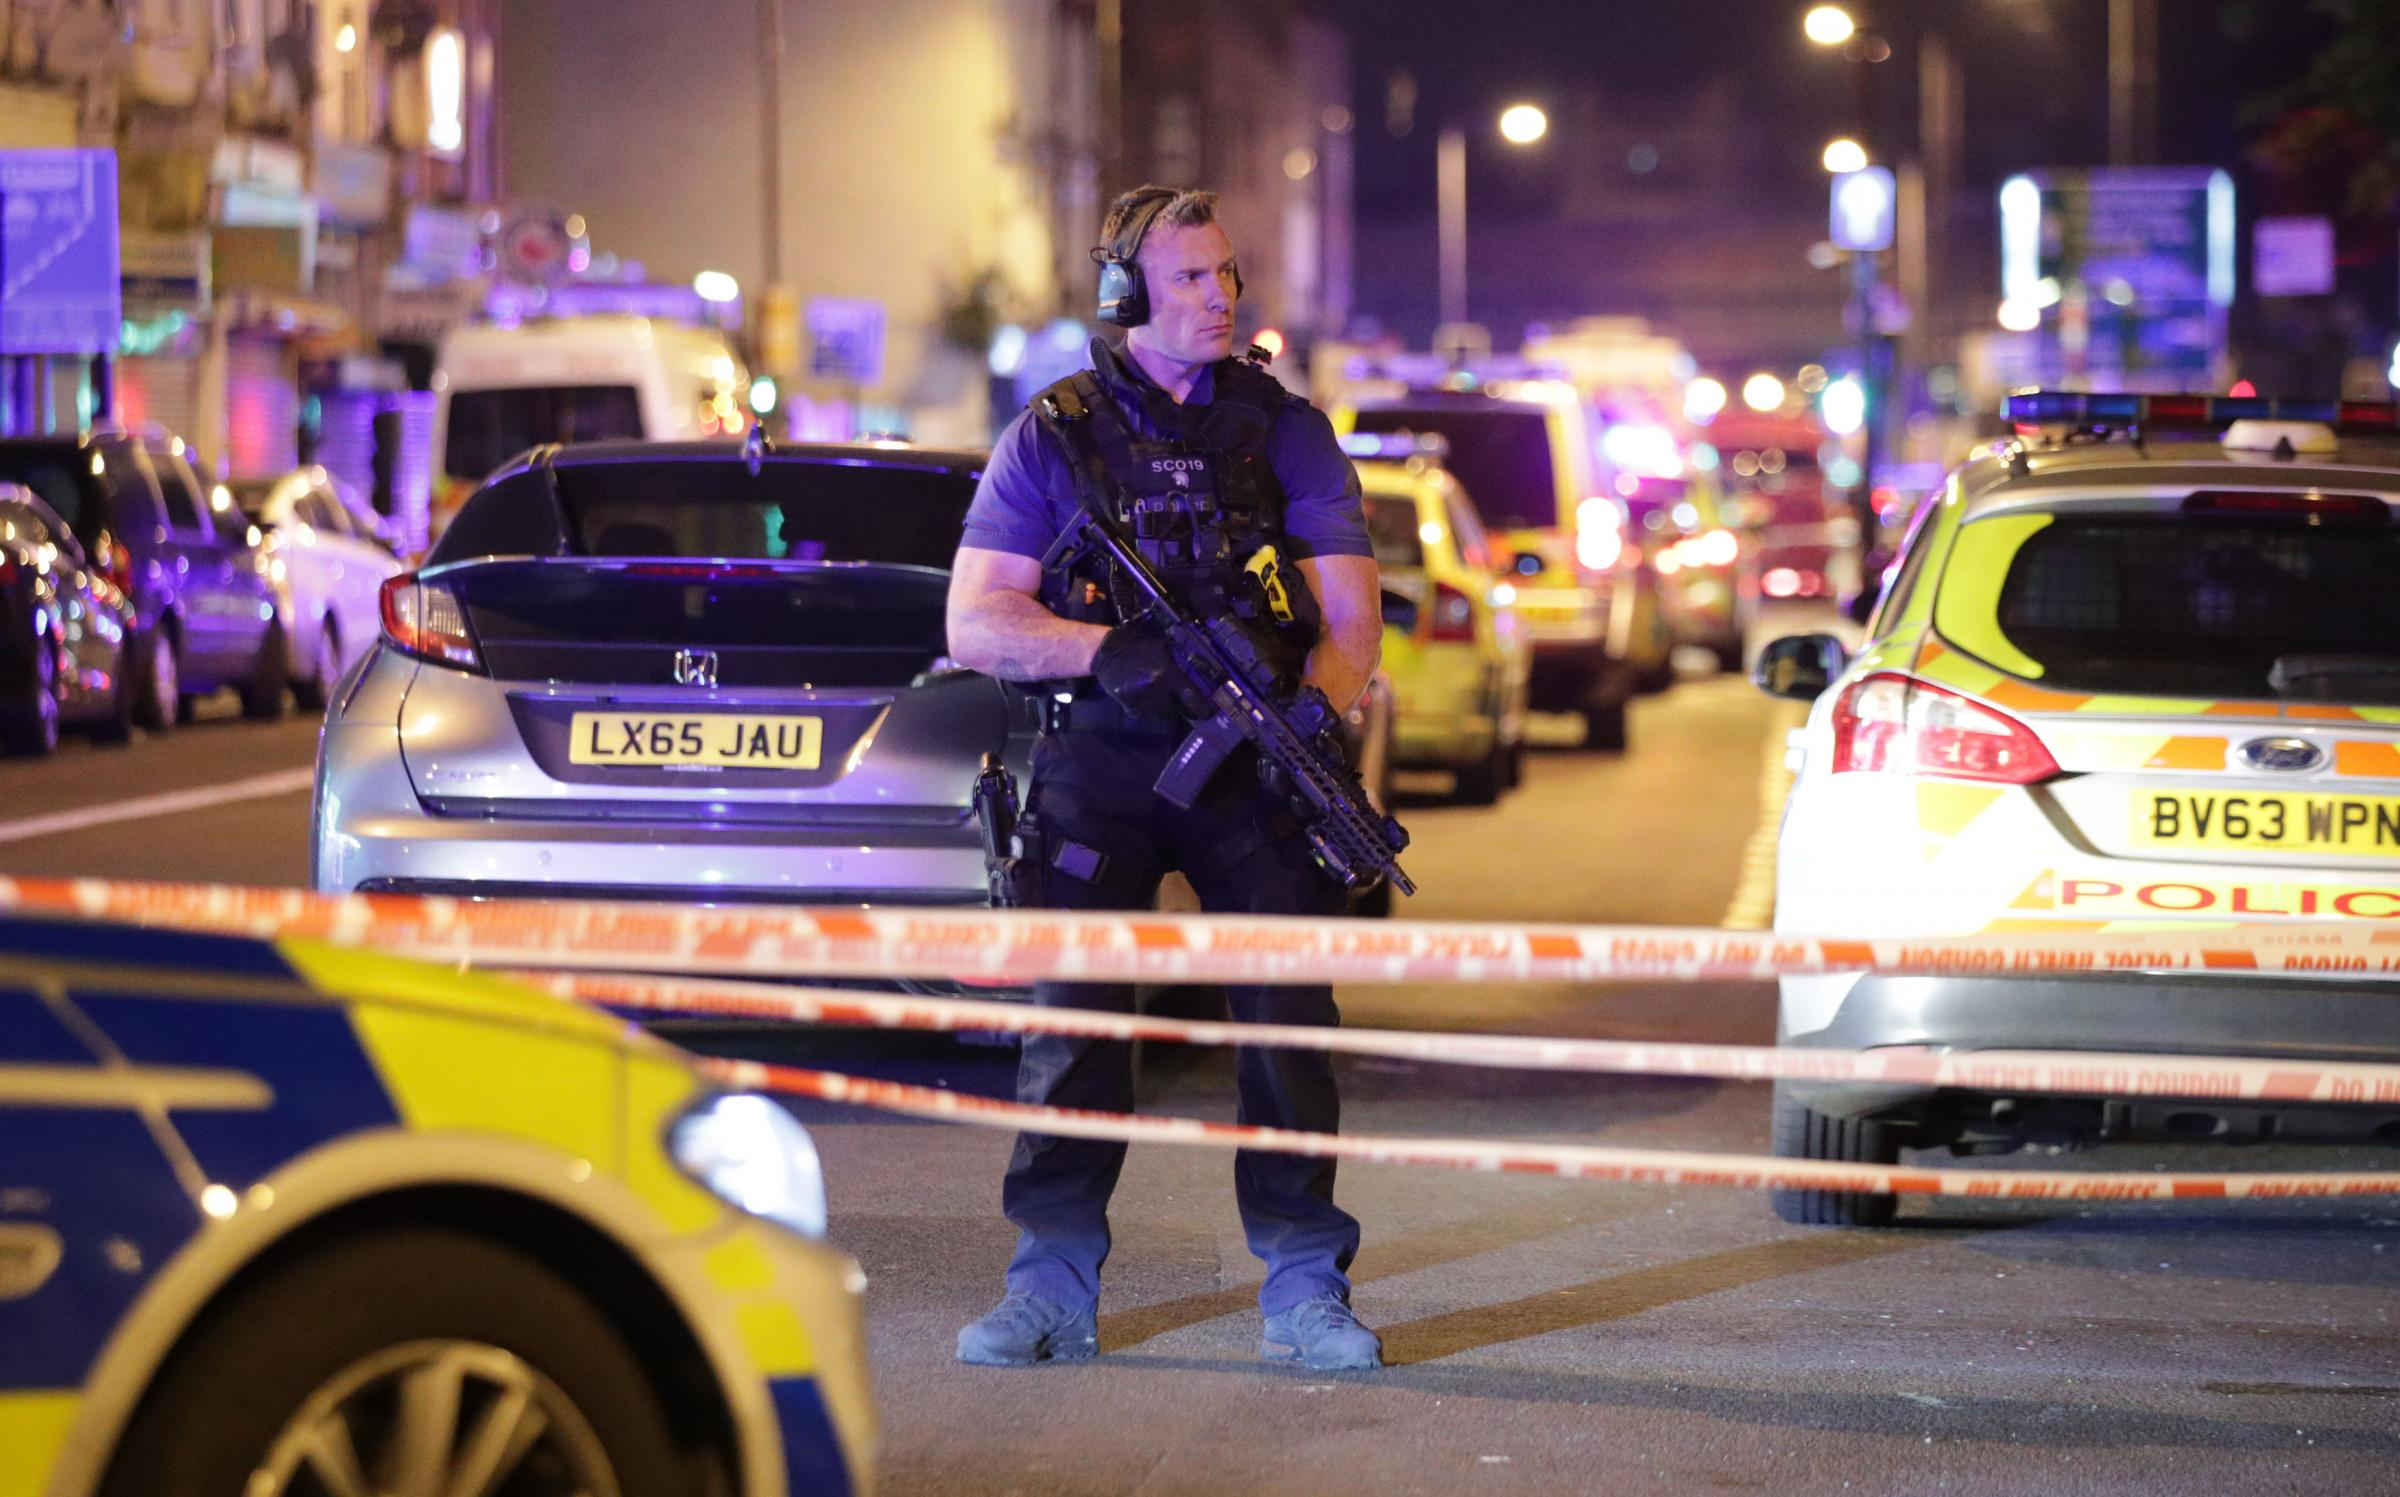 Many Casualties After Van Attack Outside Mosque in London